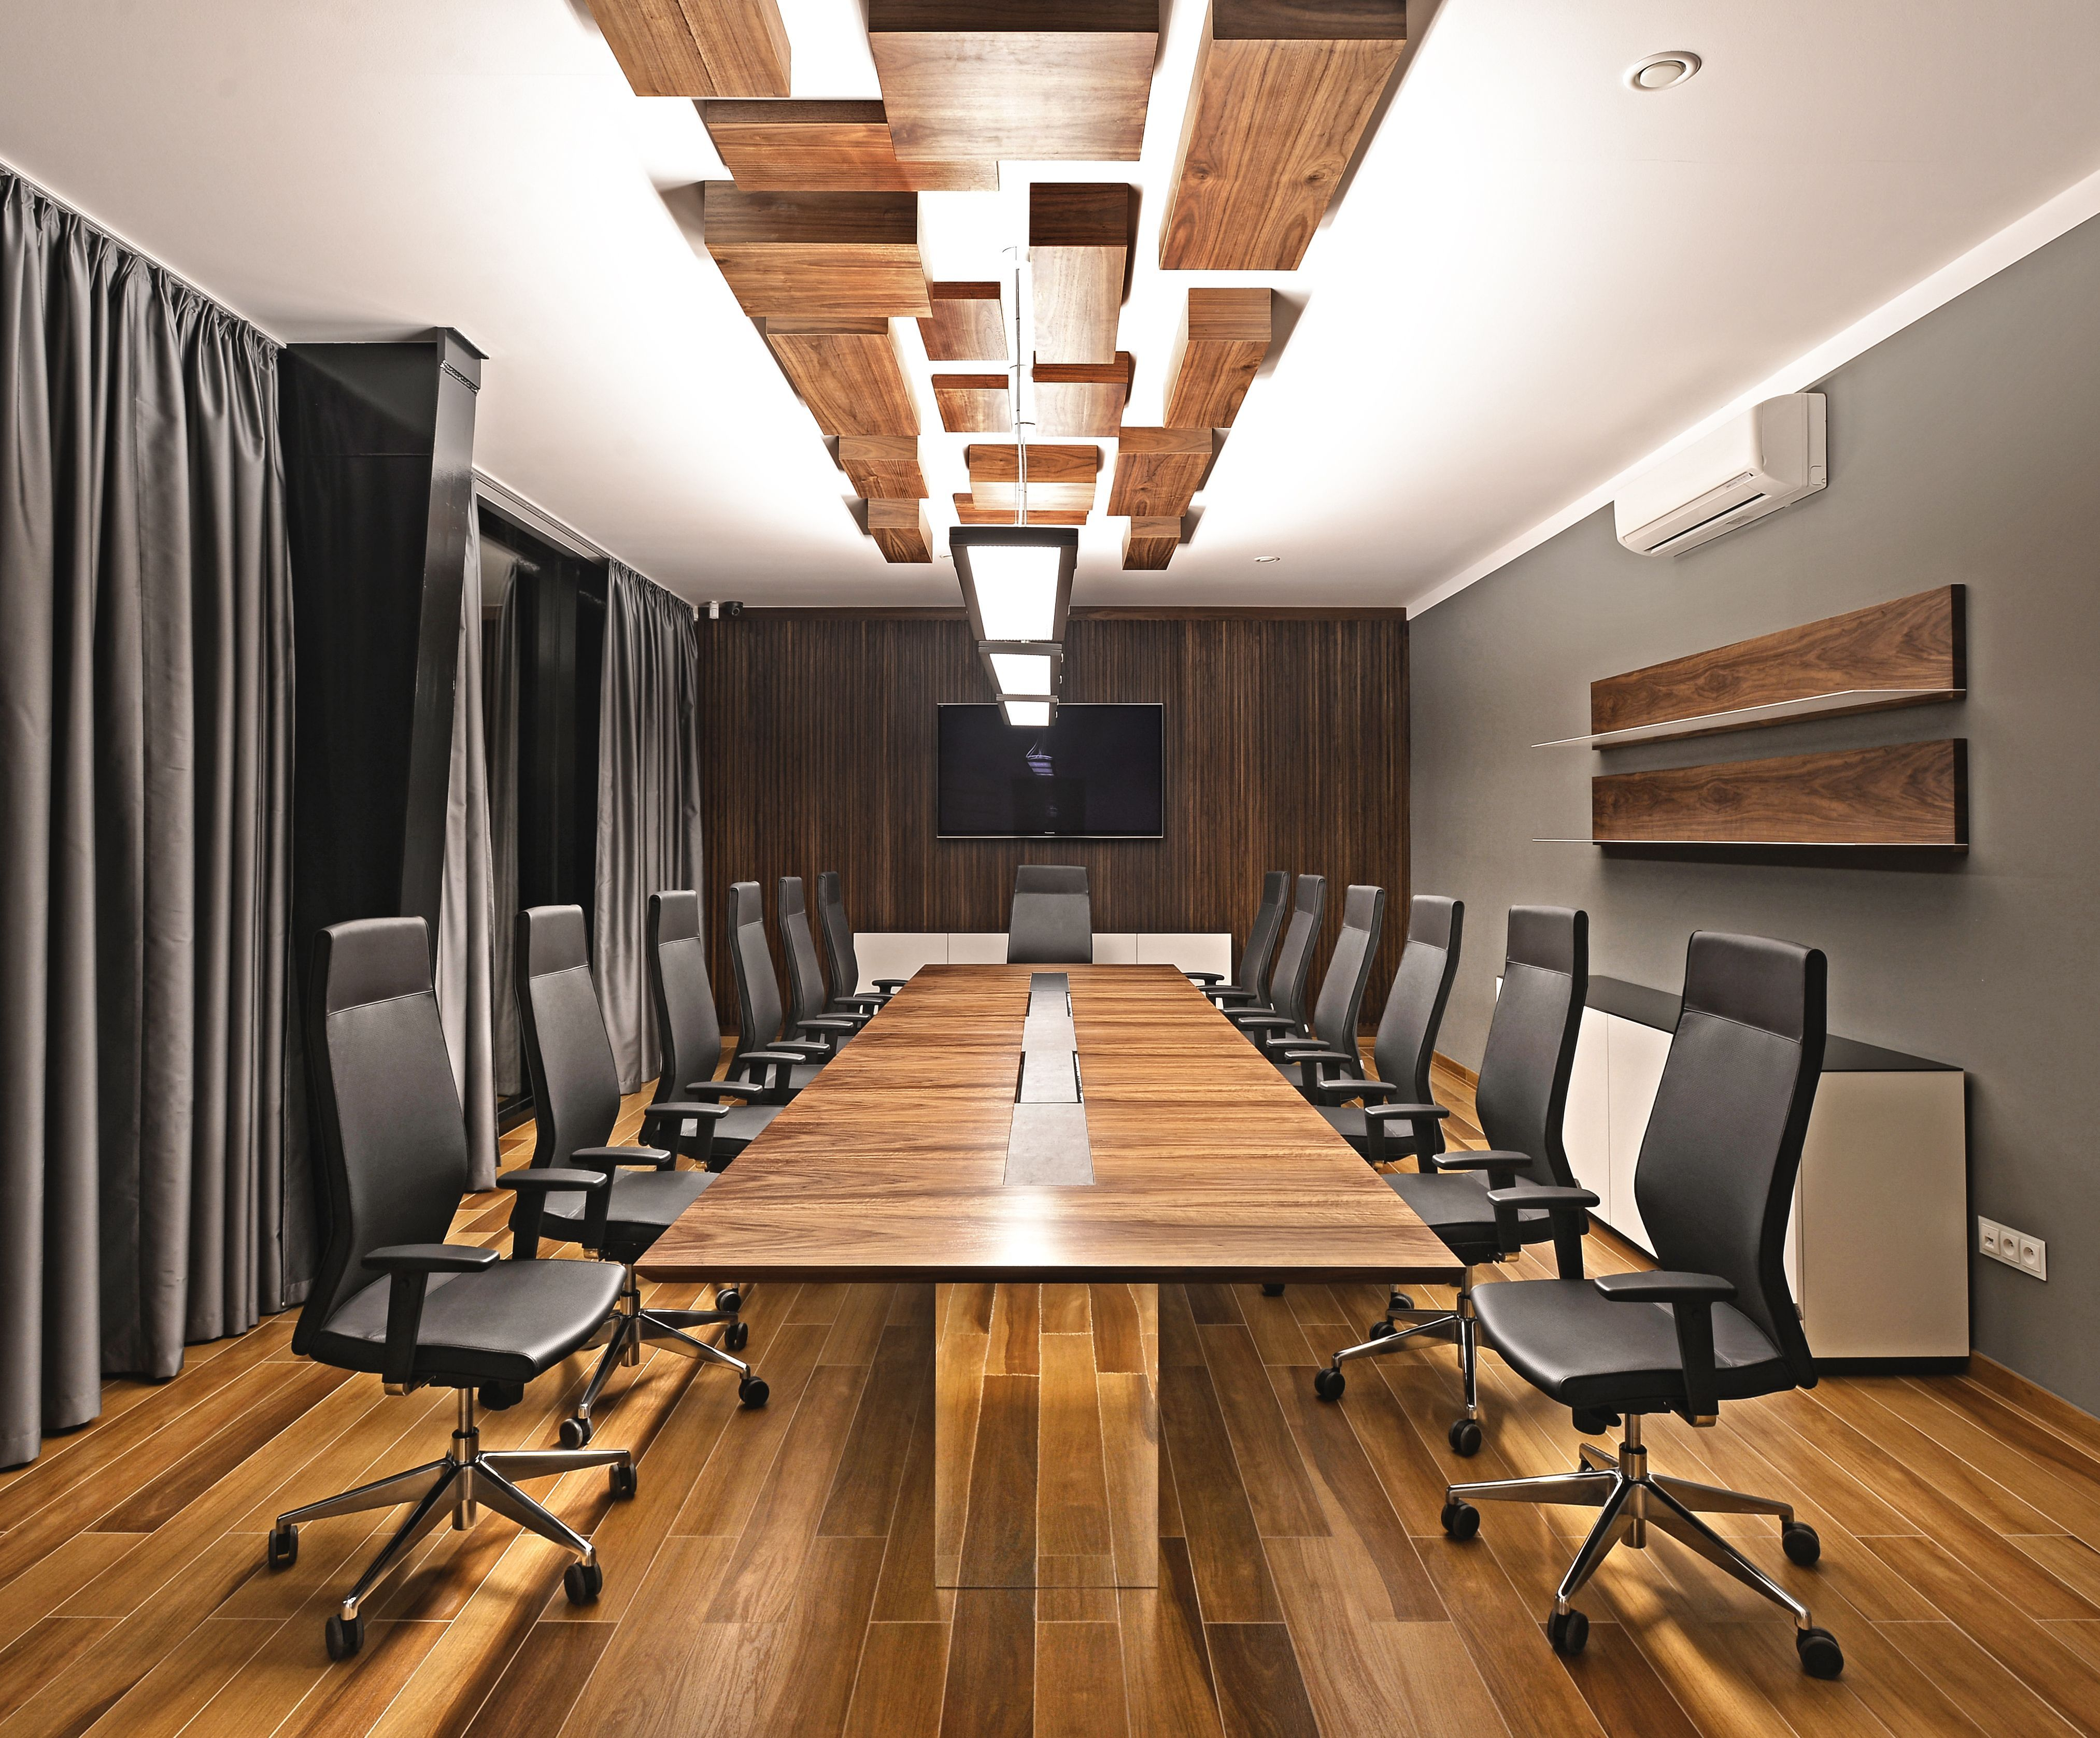 office furniture, office design, conference room, conference room